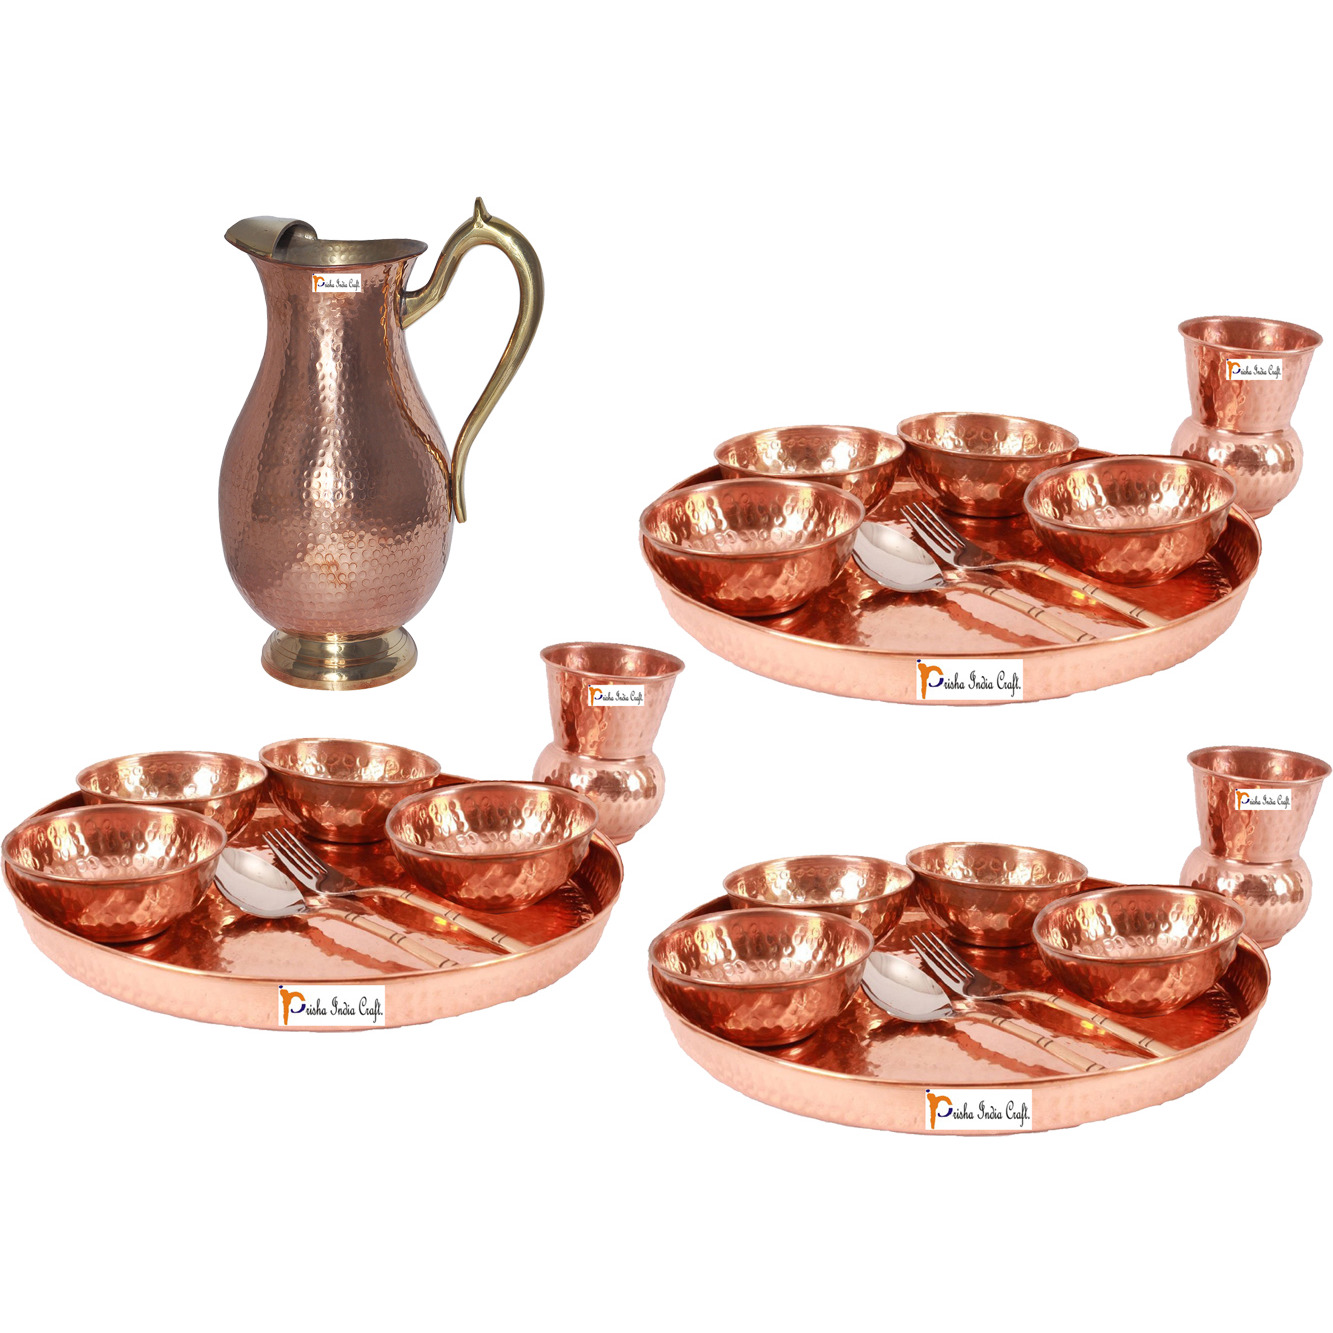 Prisha India Craft B. Set of 3 Dinnerware Traditional 100% Pure Copper Dinner Set of Thali Plate, Bowls, Glass and Spoon, Dia 12  With 1 Pure Copper Mughal Pitcher Jug - Christmas Gift